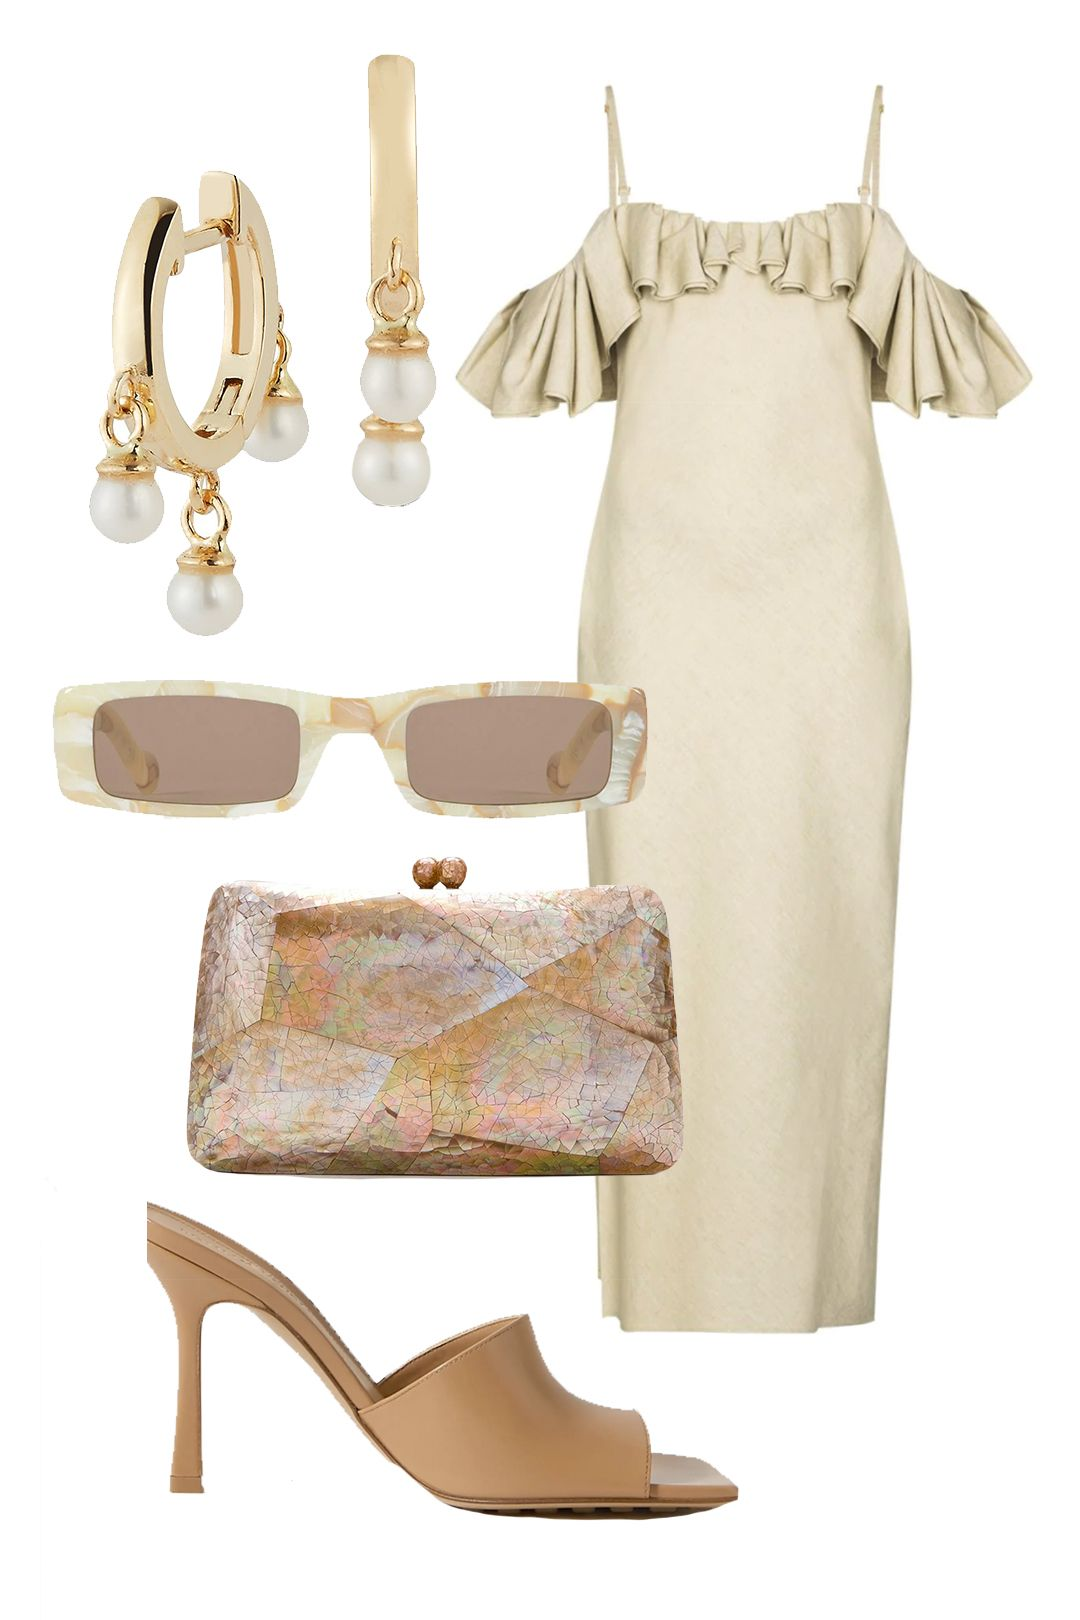 12 Fall Wedding Guest Dresses For 2020 What To Wear To A Fall Wedding,Used Wedding Dresses For Sale Uk